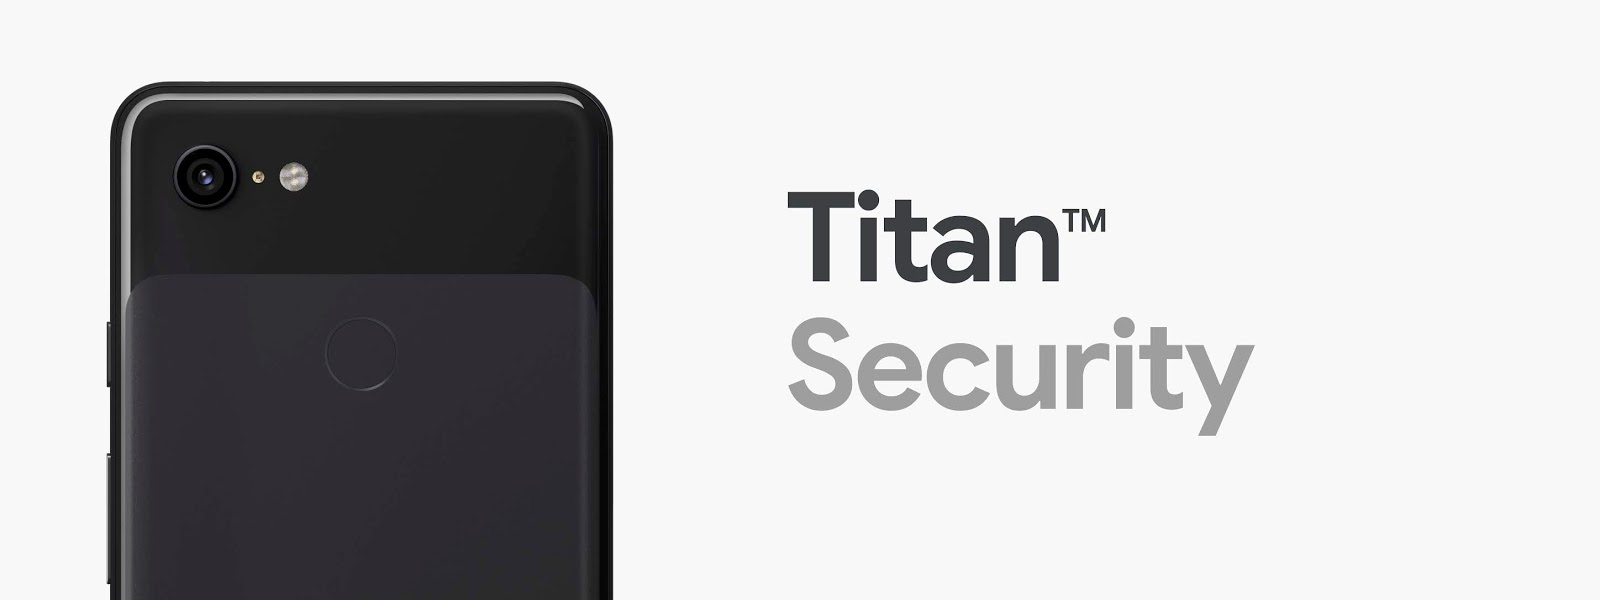 Building a Titan: Better security through a tiny chip